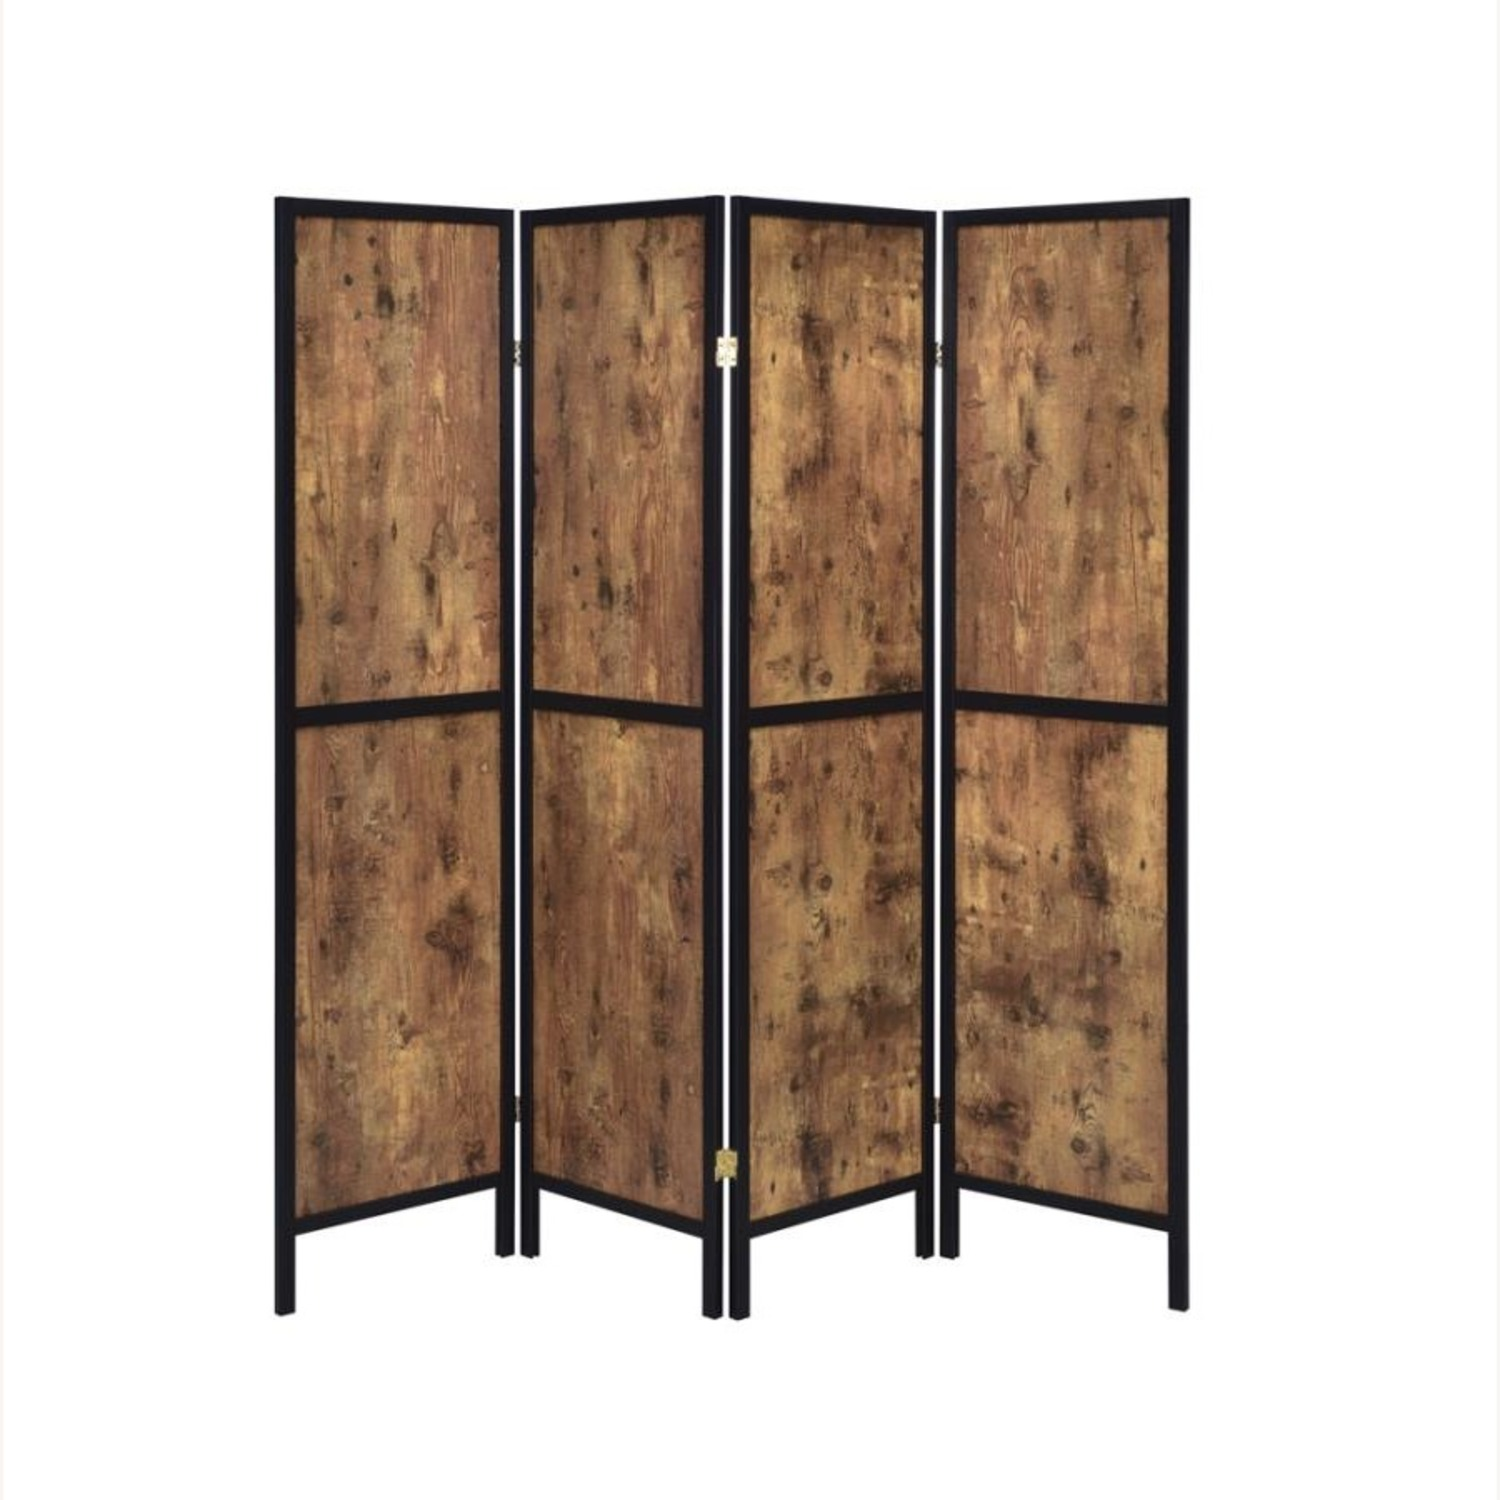 Four-Panel Folding Screen In Antique Nutmeg - image-1